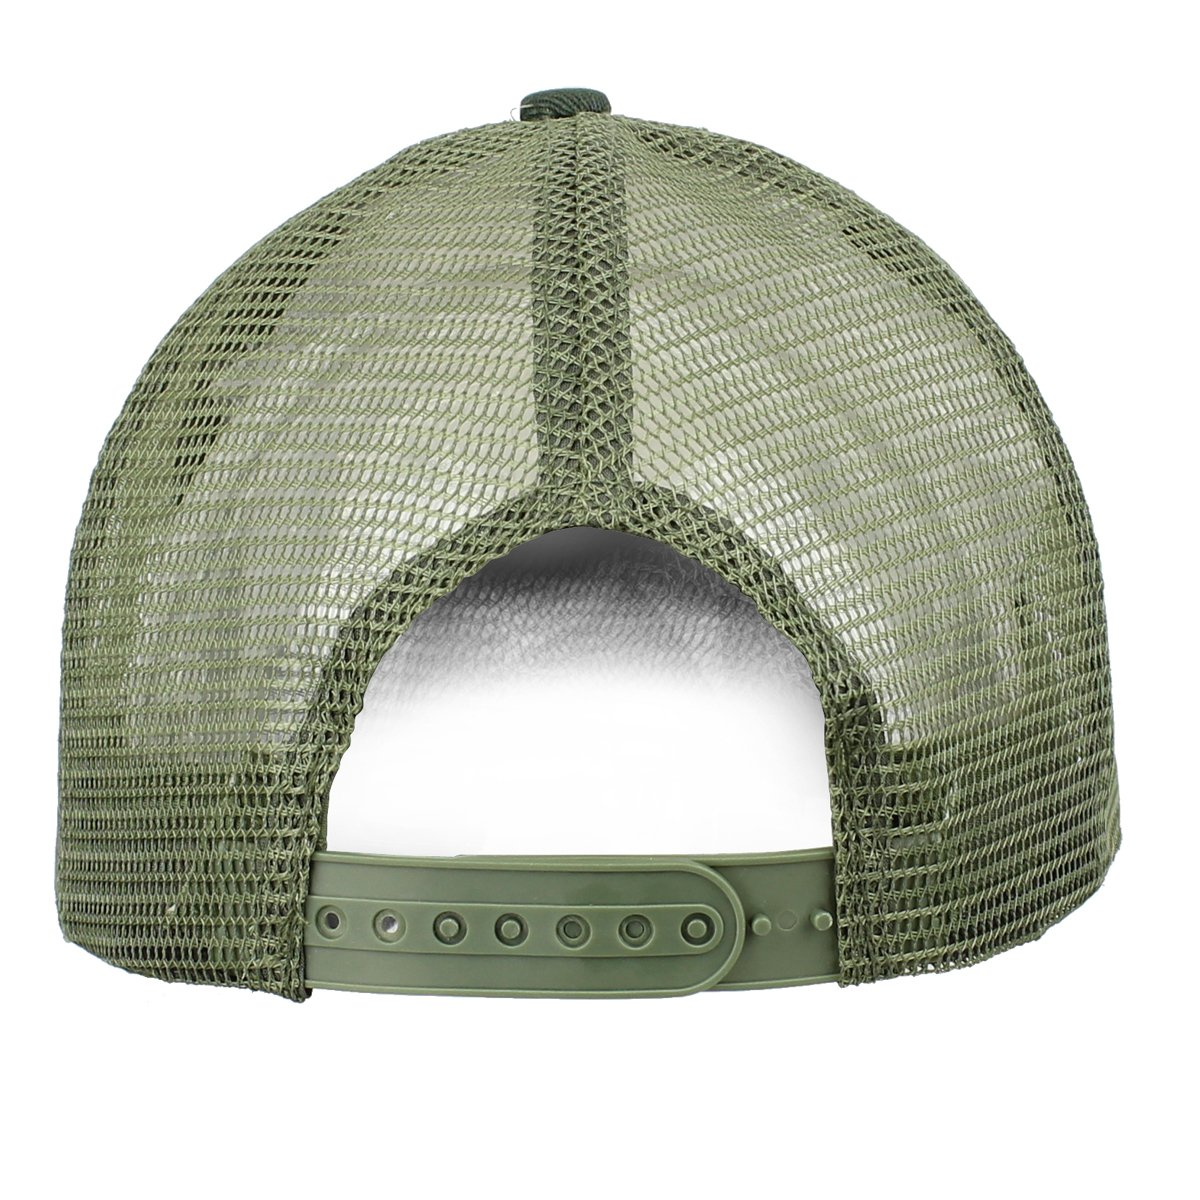 Low Profile Baseball Cap Unisex Women Trucker Hat Men Sun hat Plain Mesh Cap Camo Adjustable Cap Outdoor Sport Hunt Cap